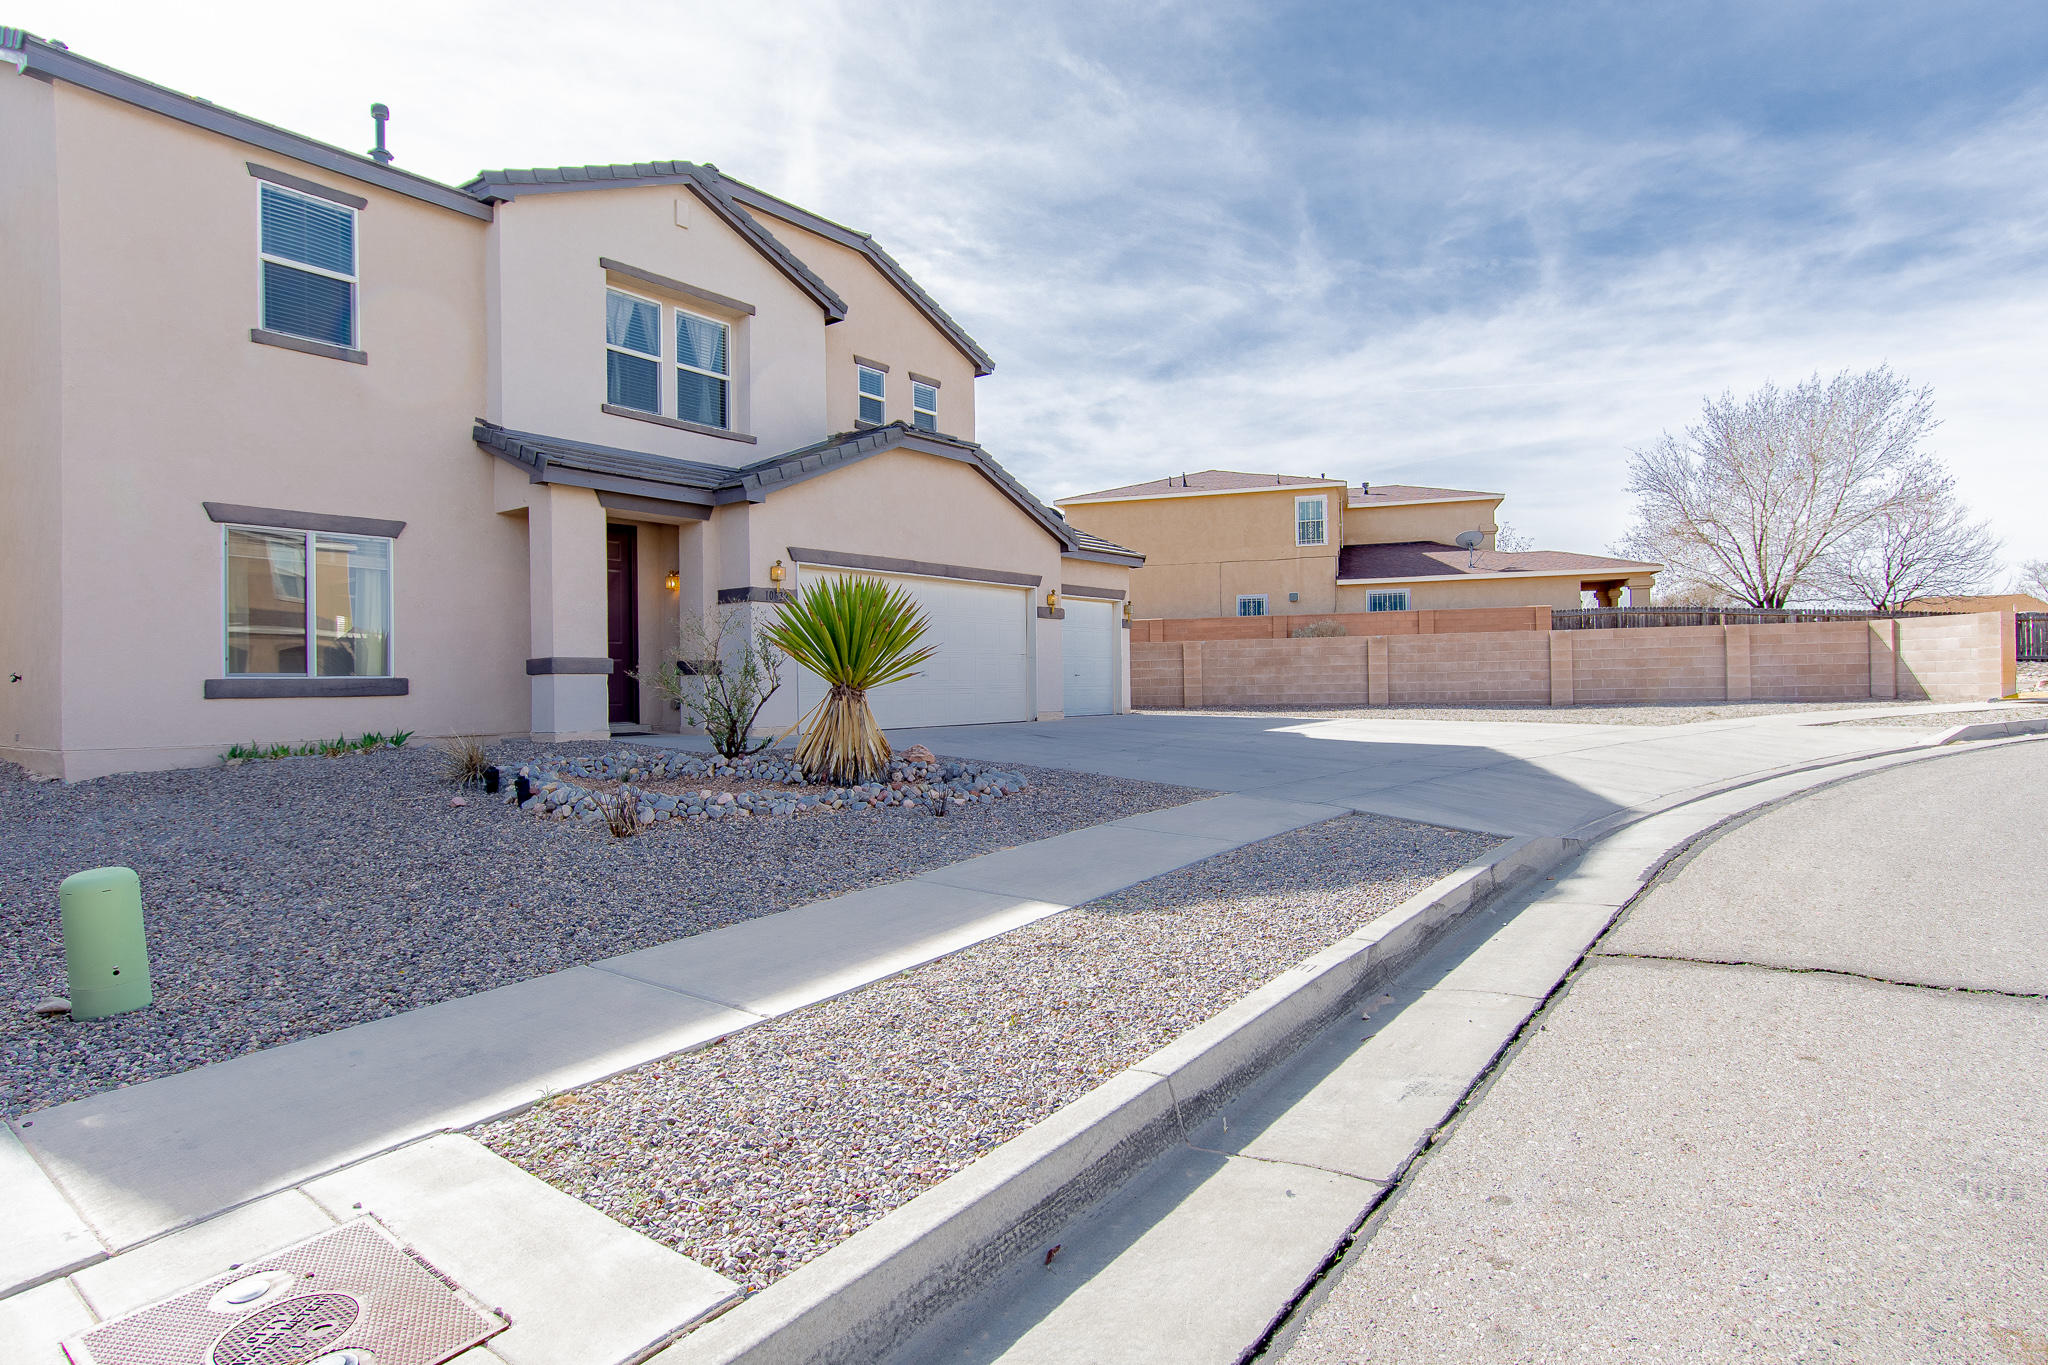 10632 NW Cavenaugh Drive, Northwest Albuquerque and Northwest Heights, New Mexico